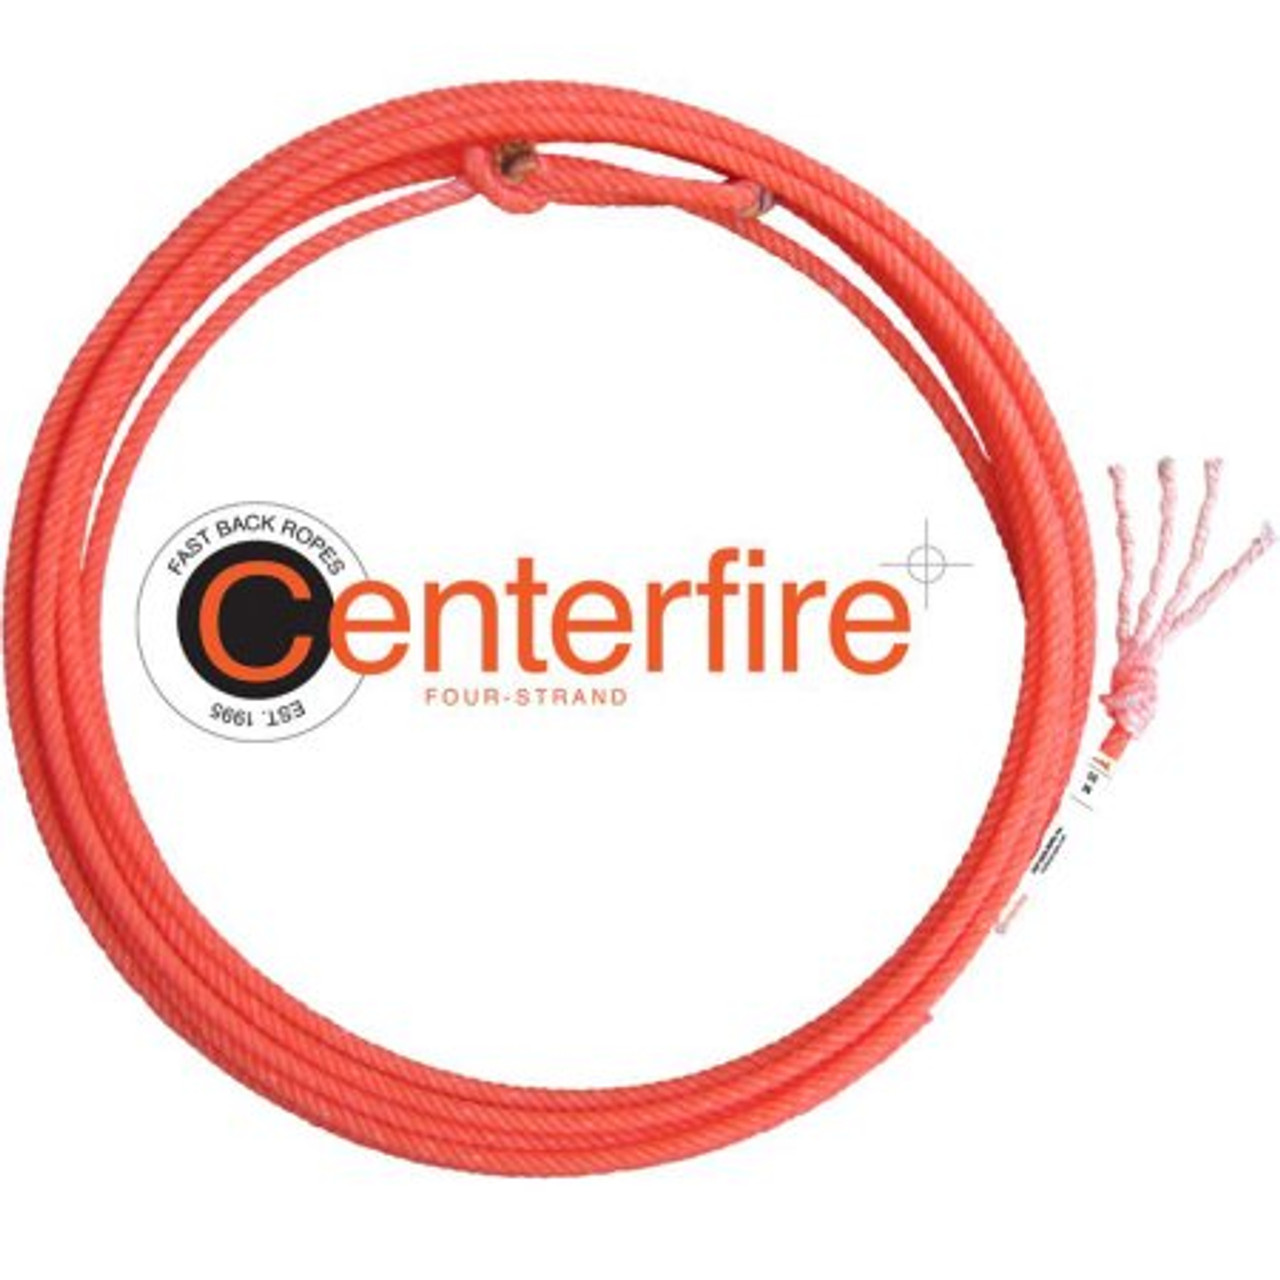 Fast Back Centerfire - Hd Rope 31' (4034)